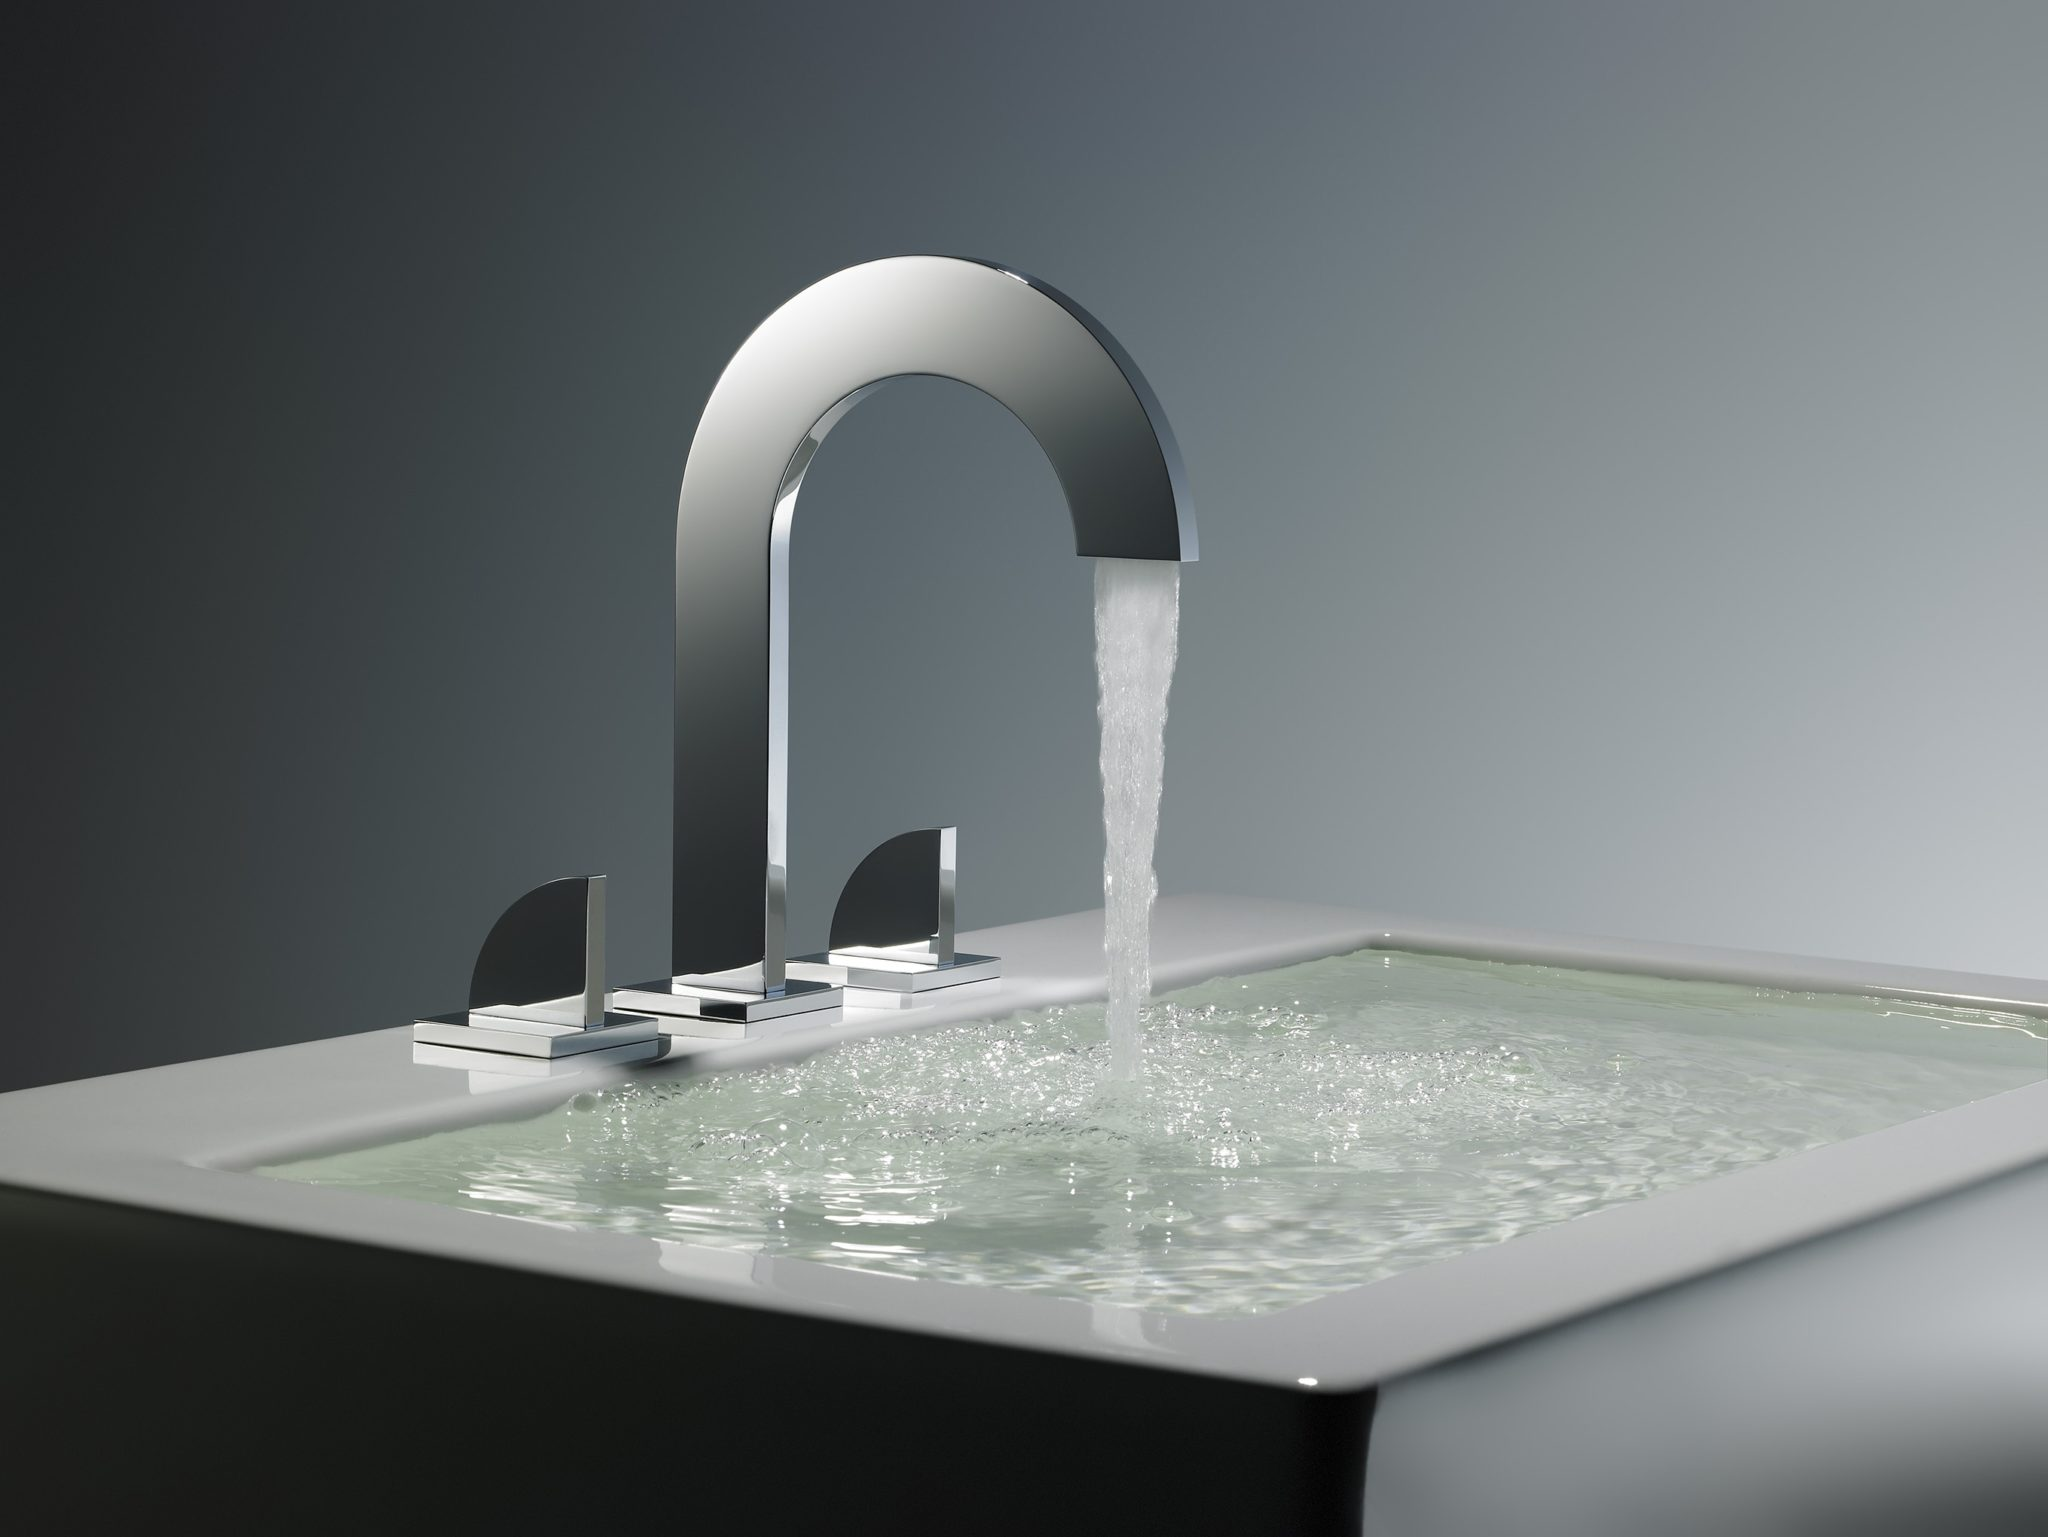 Combining German engineering with South American artistry,Franz Viegenerproduces a curated selection of sculptural bath fittings from their specialty workshopin Buenos Aires. Every piece that comes out of the factory is painstakingly machined, polished,and tested, with designs created to make a statement.